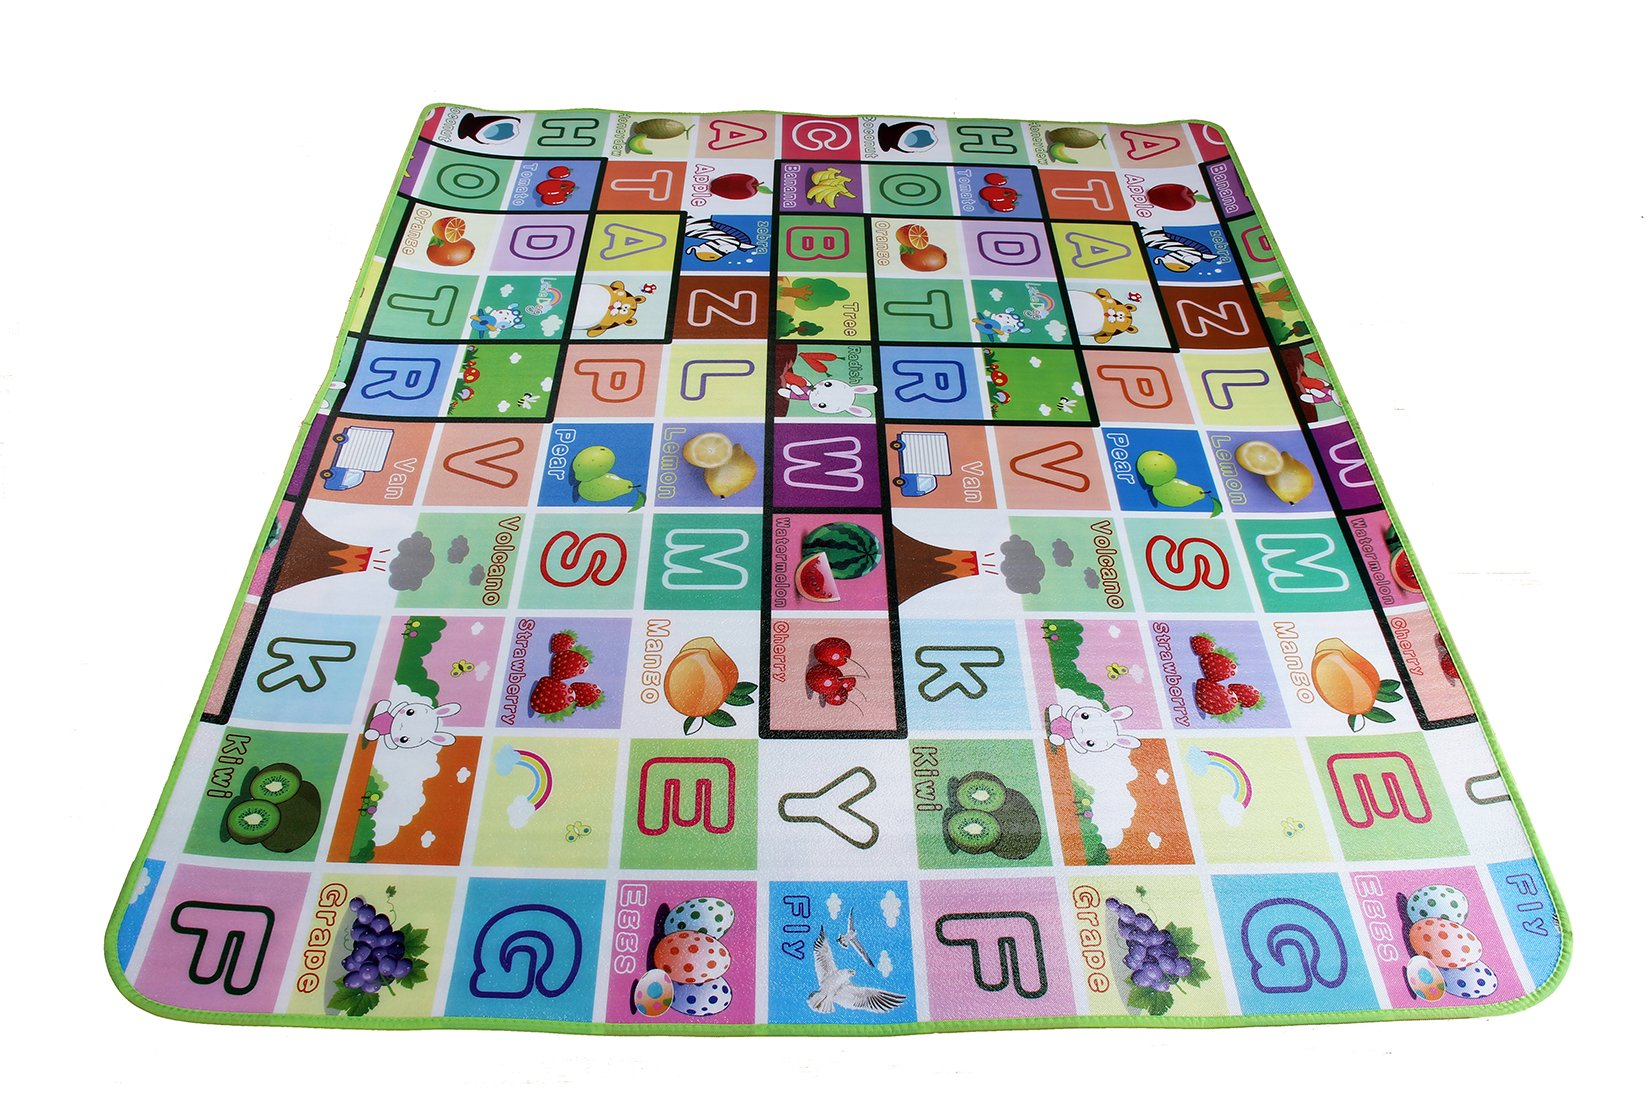 Garwarm 7159inches Extra Large Baby Crawling Mat Baby Play Mat Game Mat,0.2-Inch Thick (US STORE) by Garwarm (Image #3)